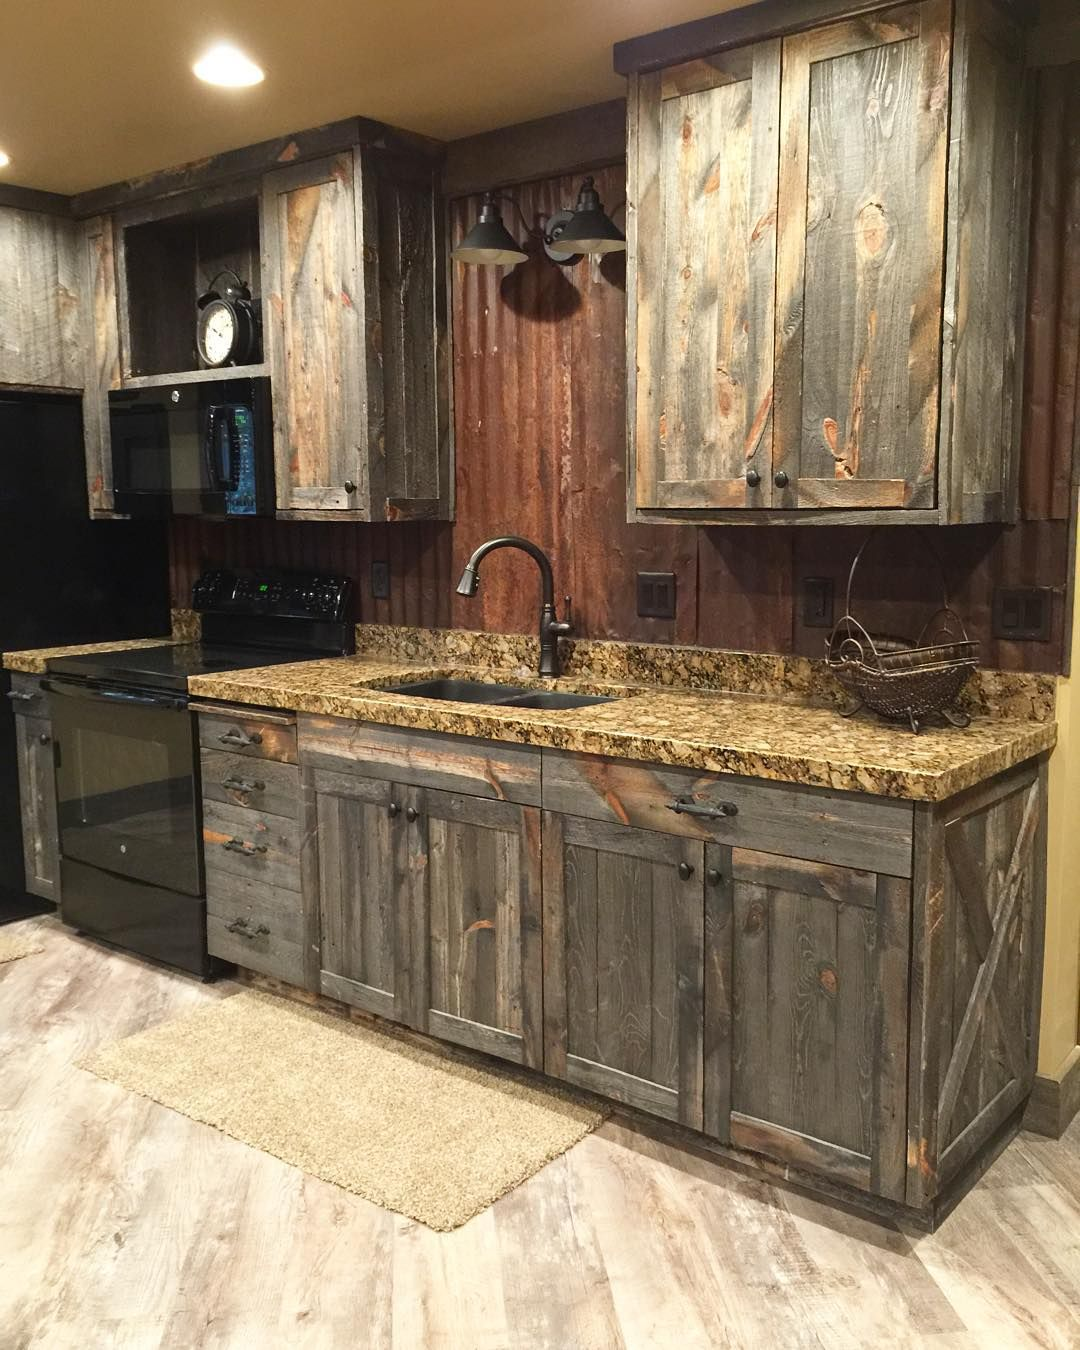 rustic kitchen cabinet tuscan decor 15 cabinets designs ideas with photo gallery a little barnwood and corrugated steel backsplash love how homey it is cabininthewoods diy